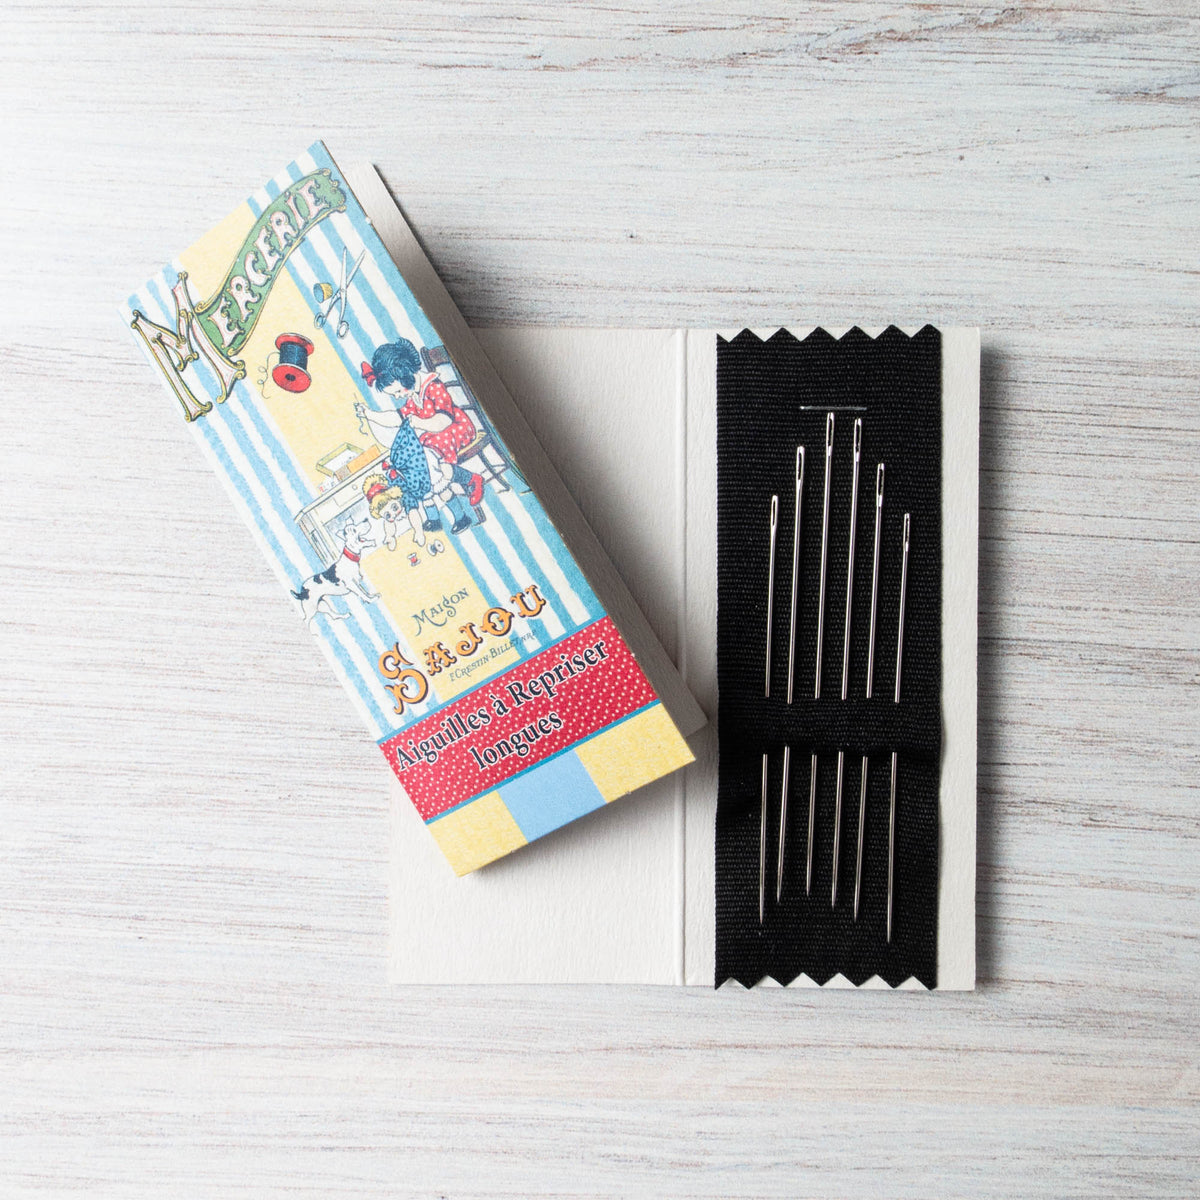 Maison Sajou Long Darning Needles Needles - Snuggly Monkey